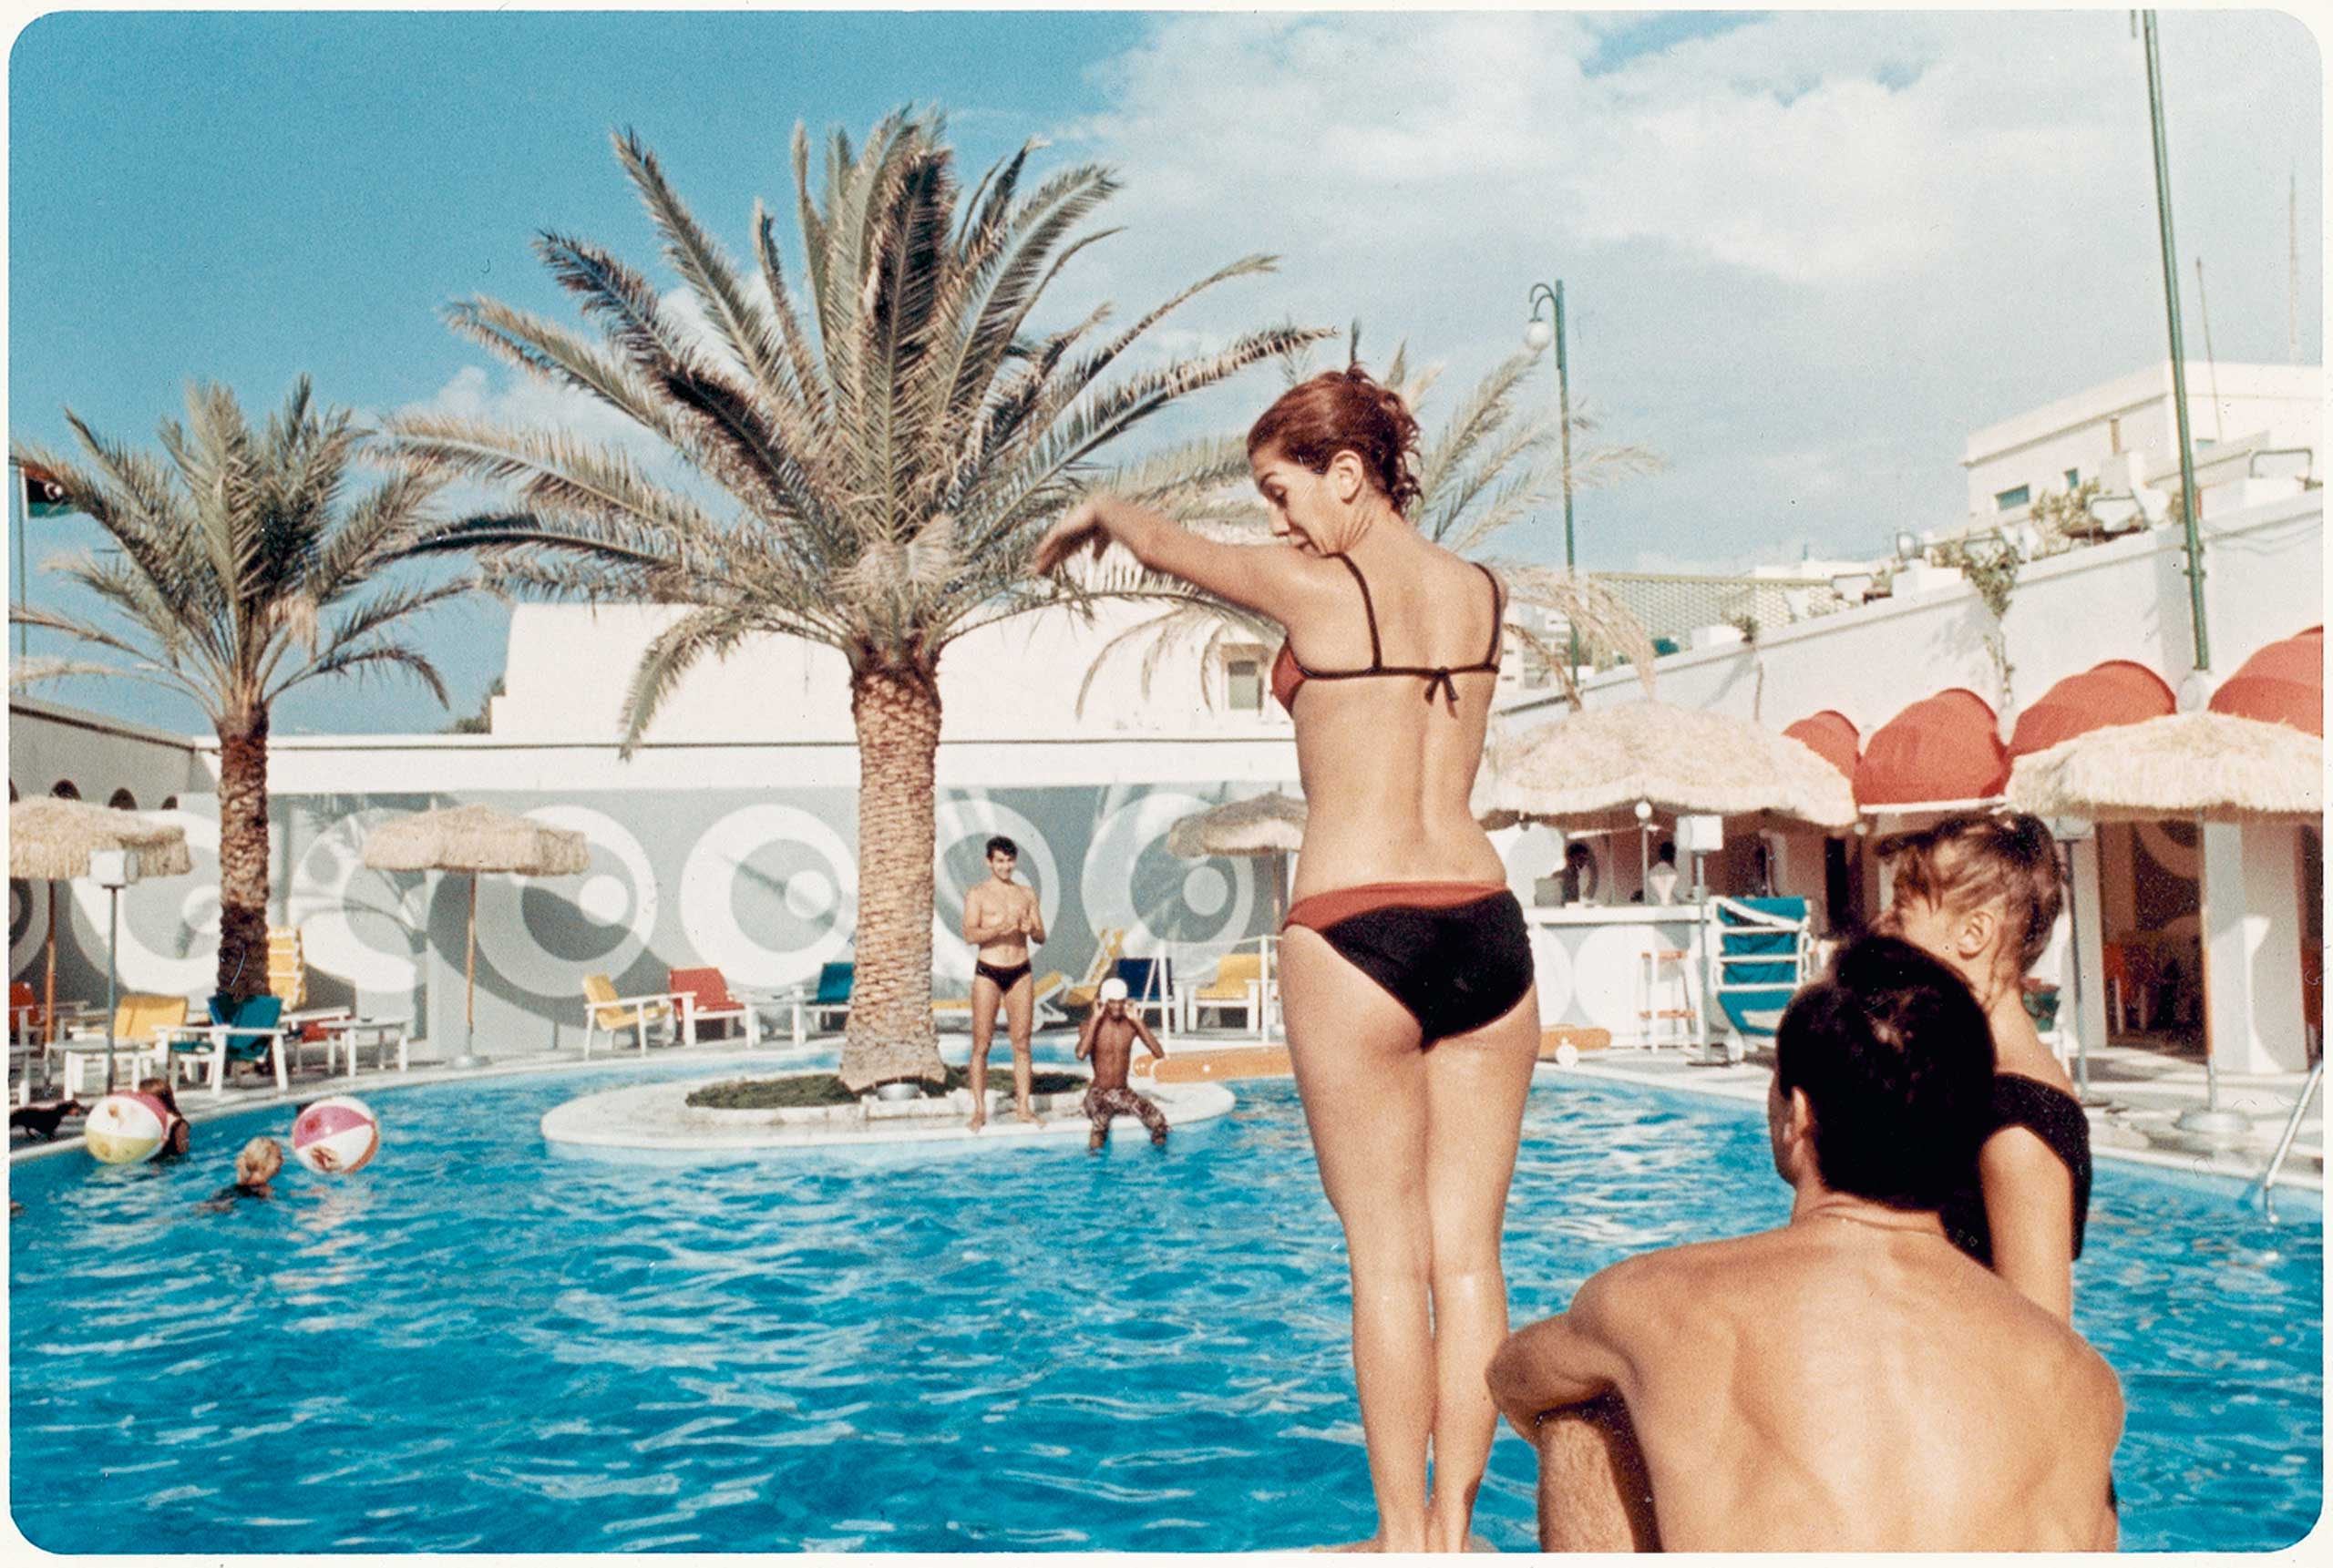 The Uaddan Hotel swimming pool was the center stage for cosmopolitan Libyans